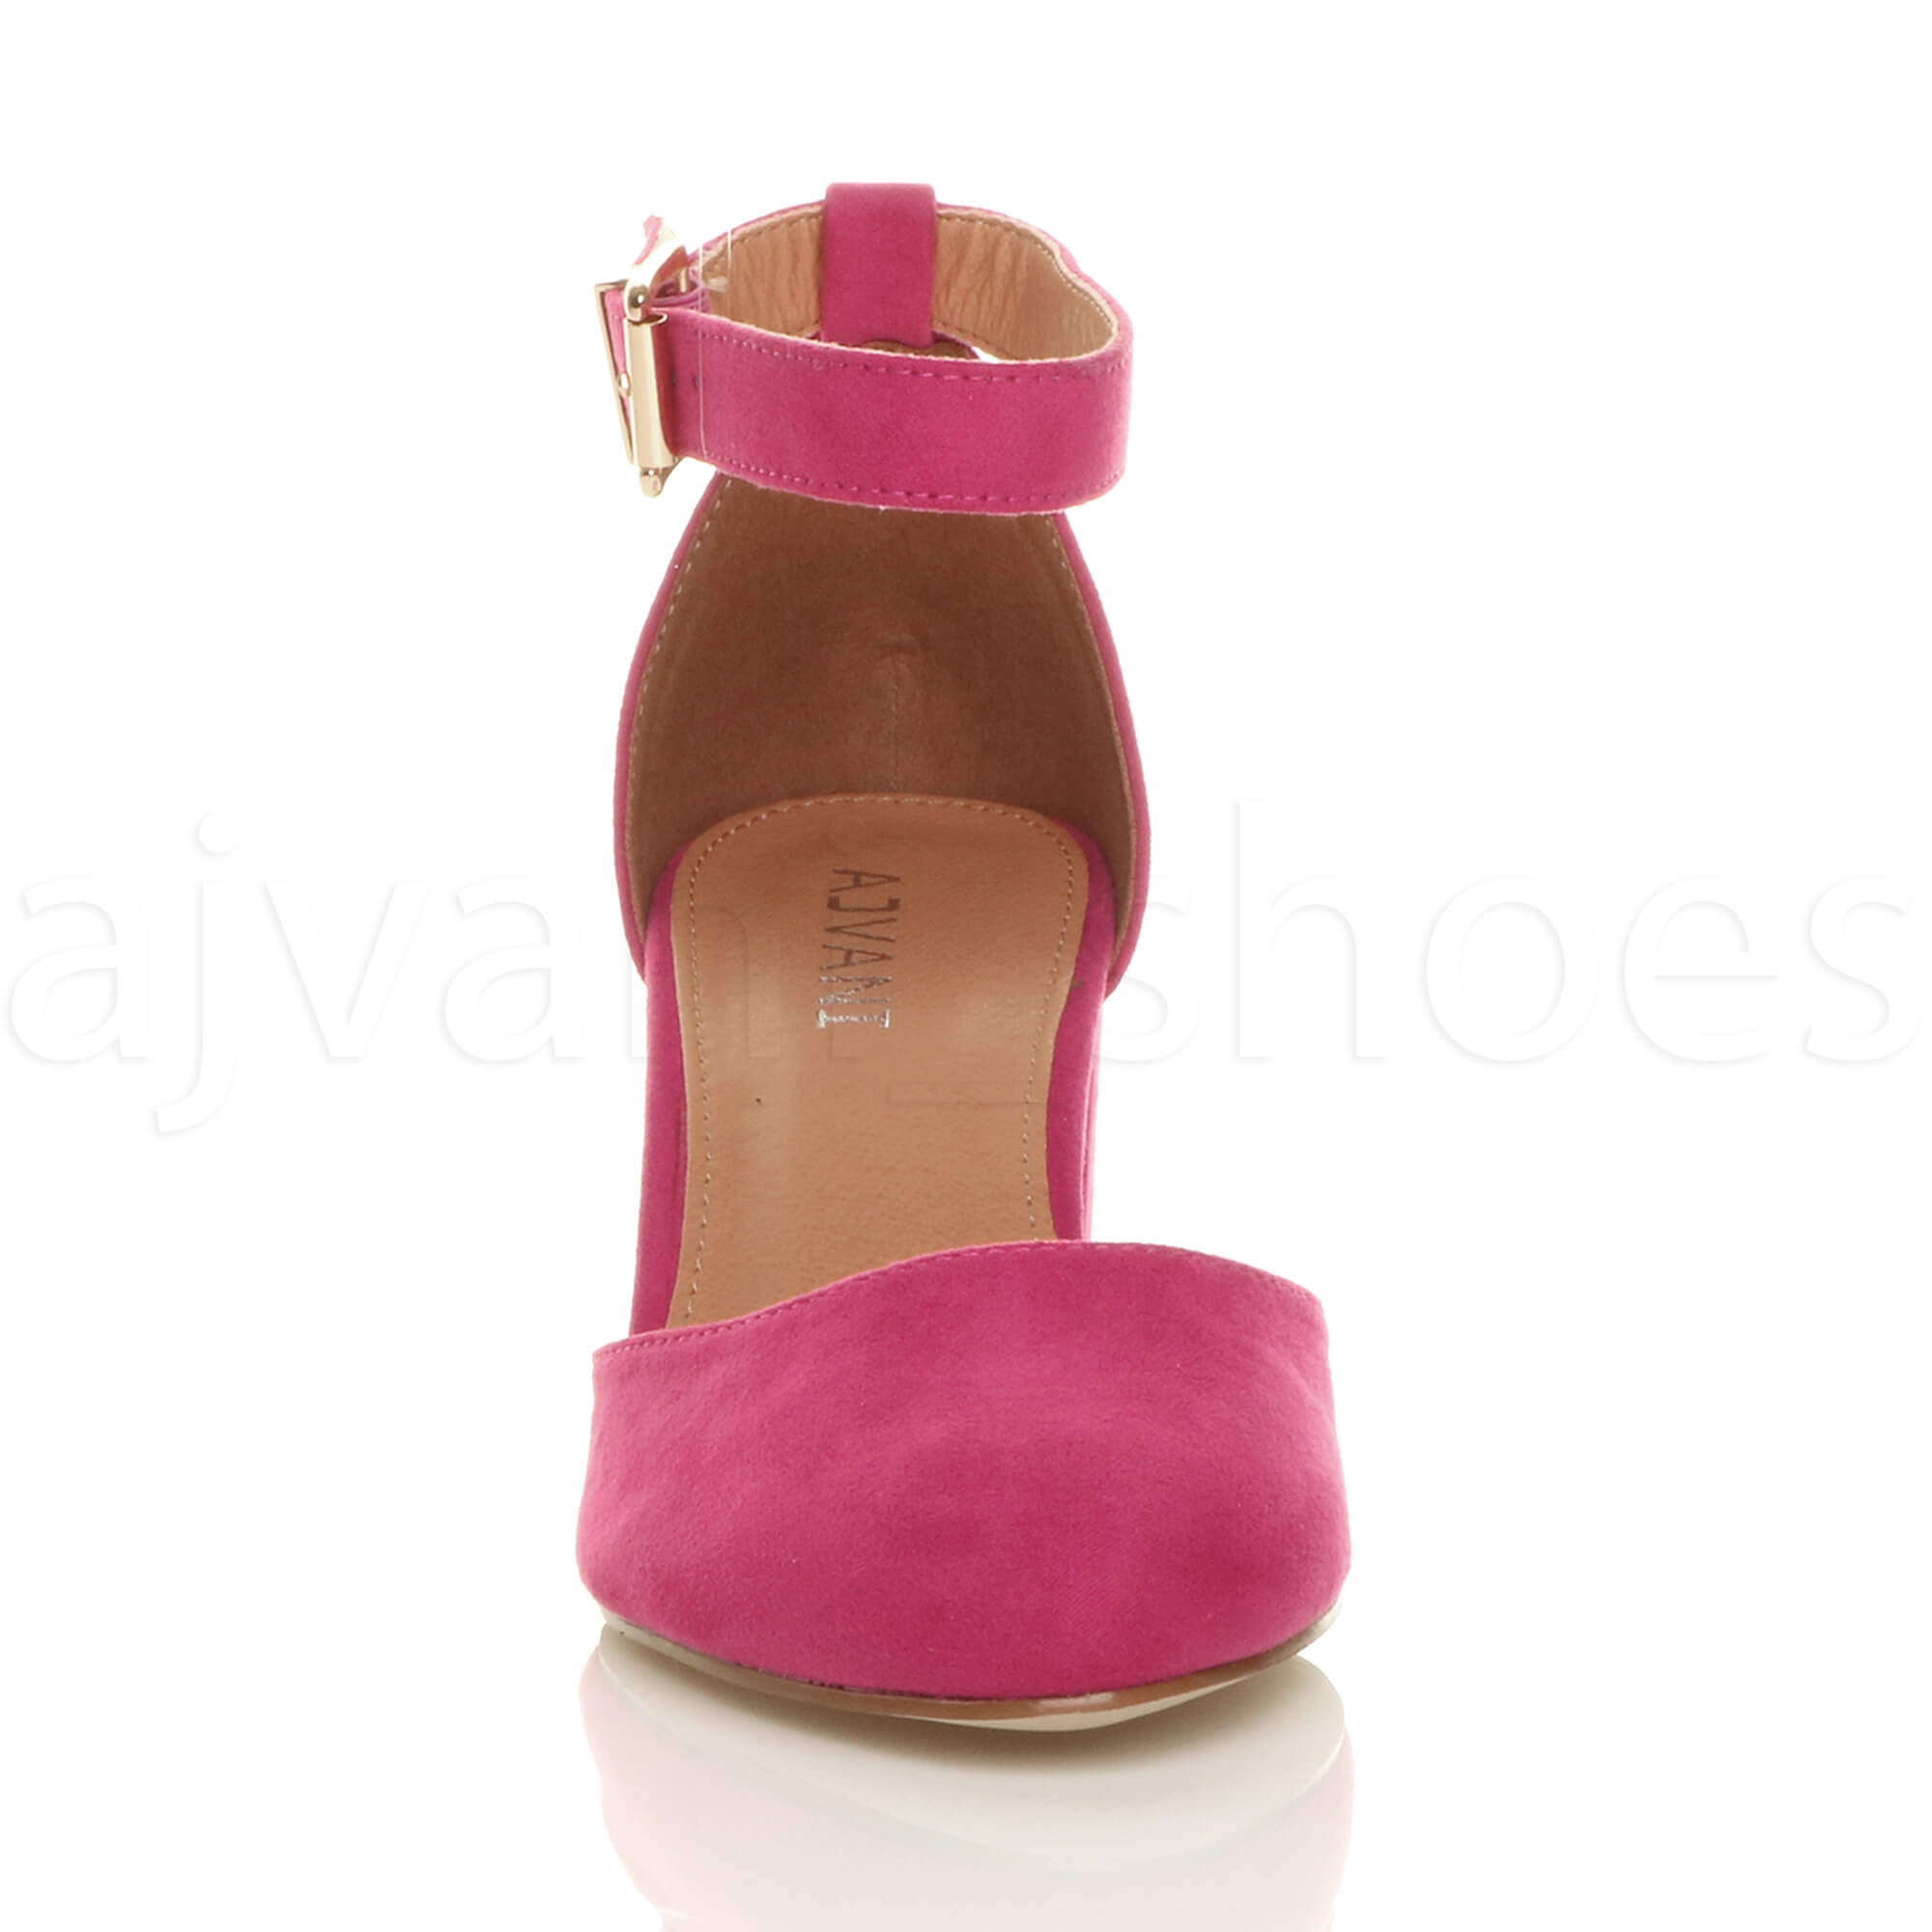 WOMENS-LADIES-LOW-MID-BLOCK-HEEL-ANKLE-STRAP-MARY-JANE-COURT-SHOES-SANDALS-SIZE thumbnail 47